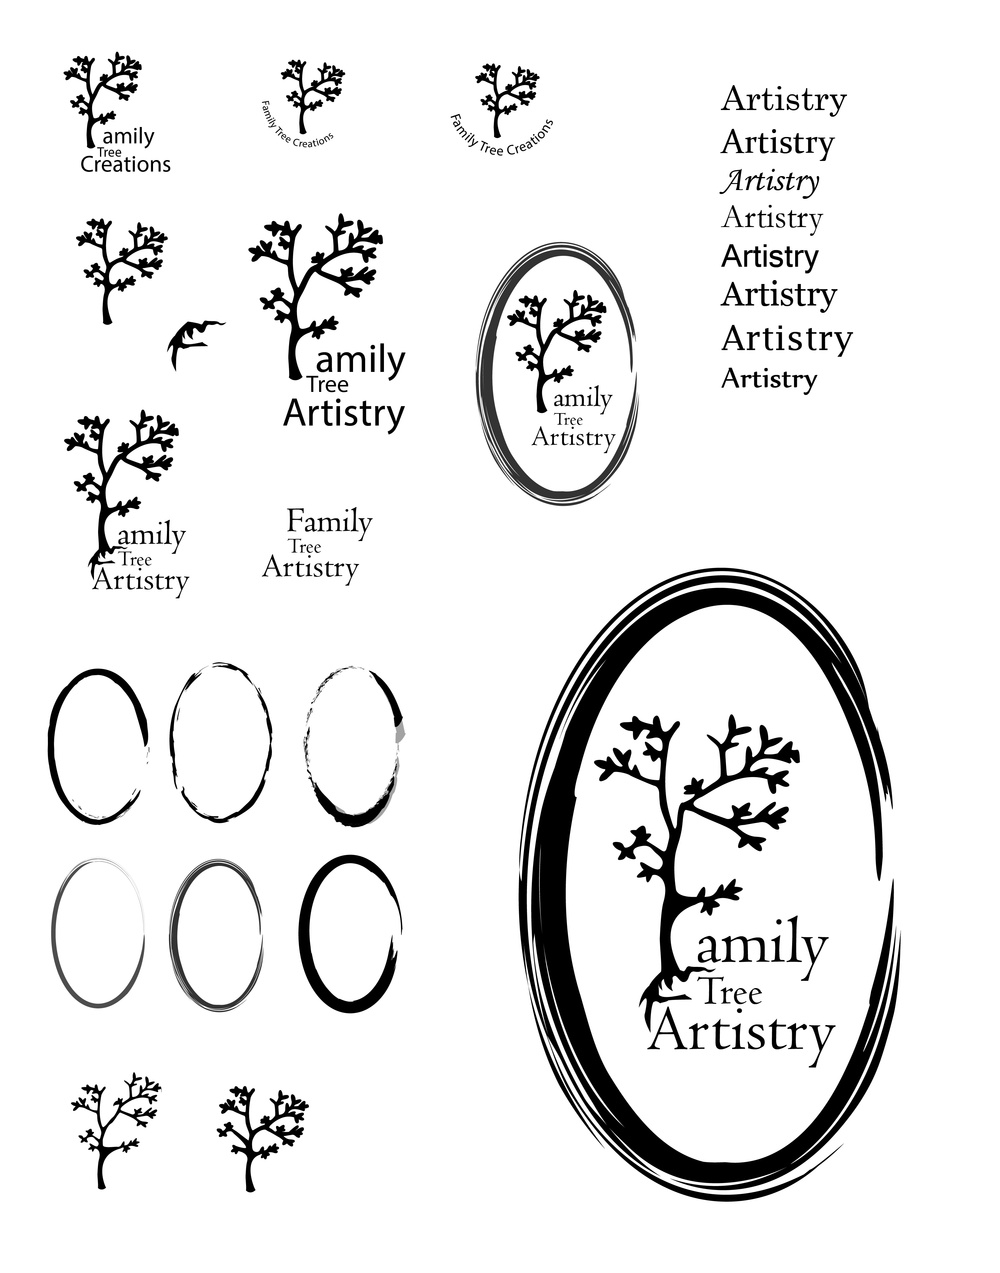 logo for family tree creations-01.jpg